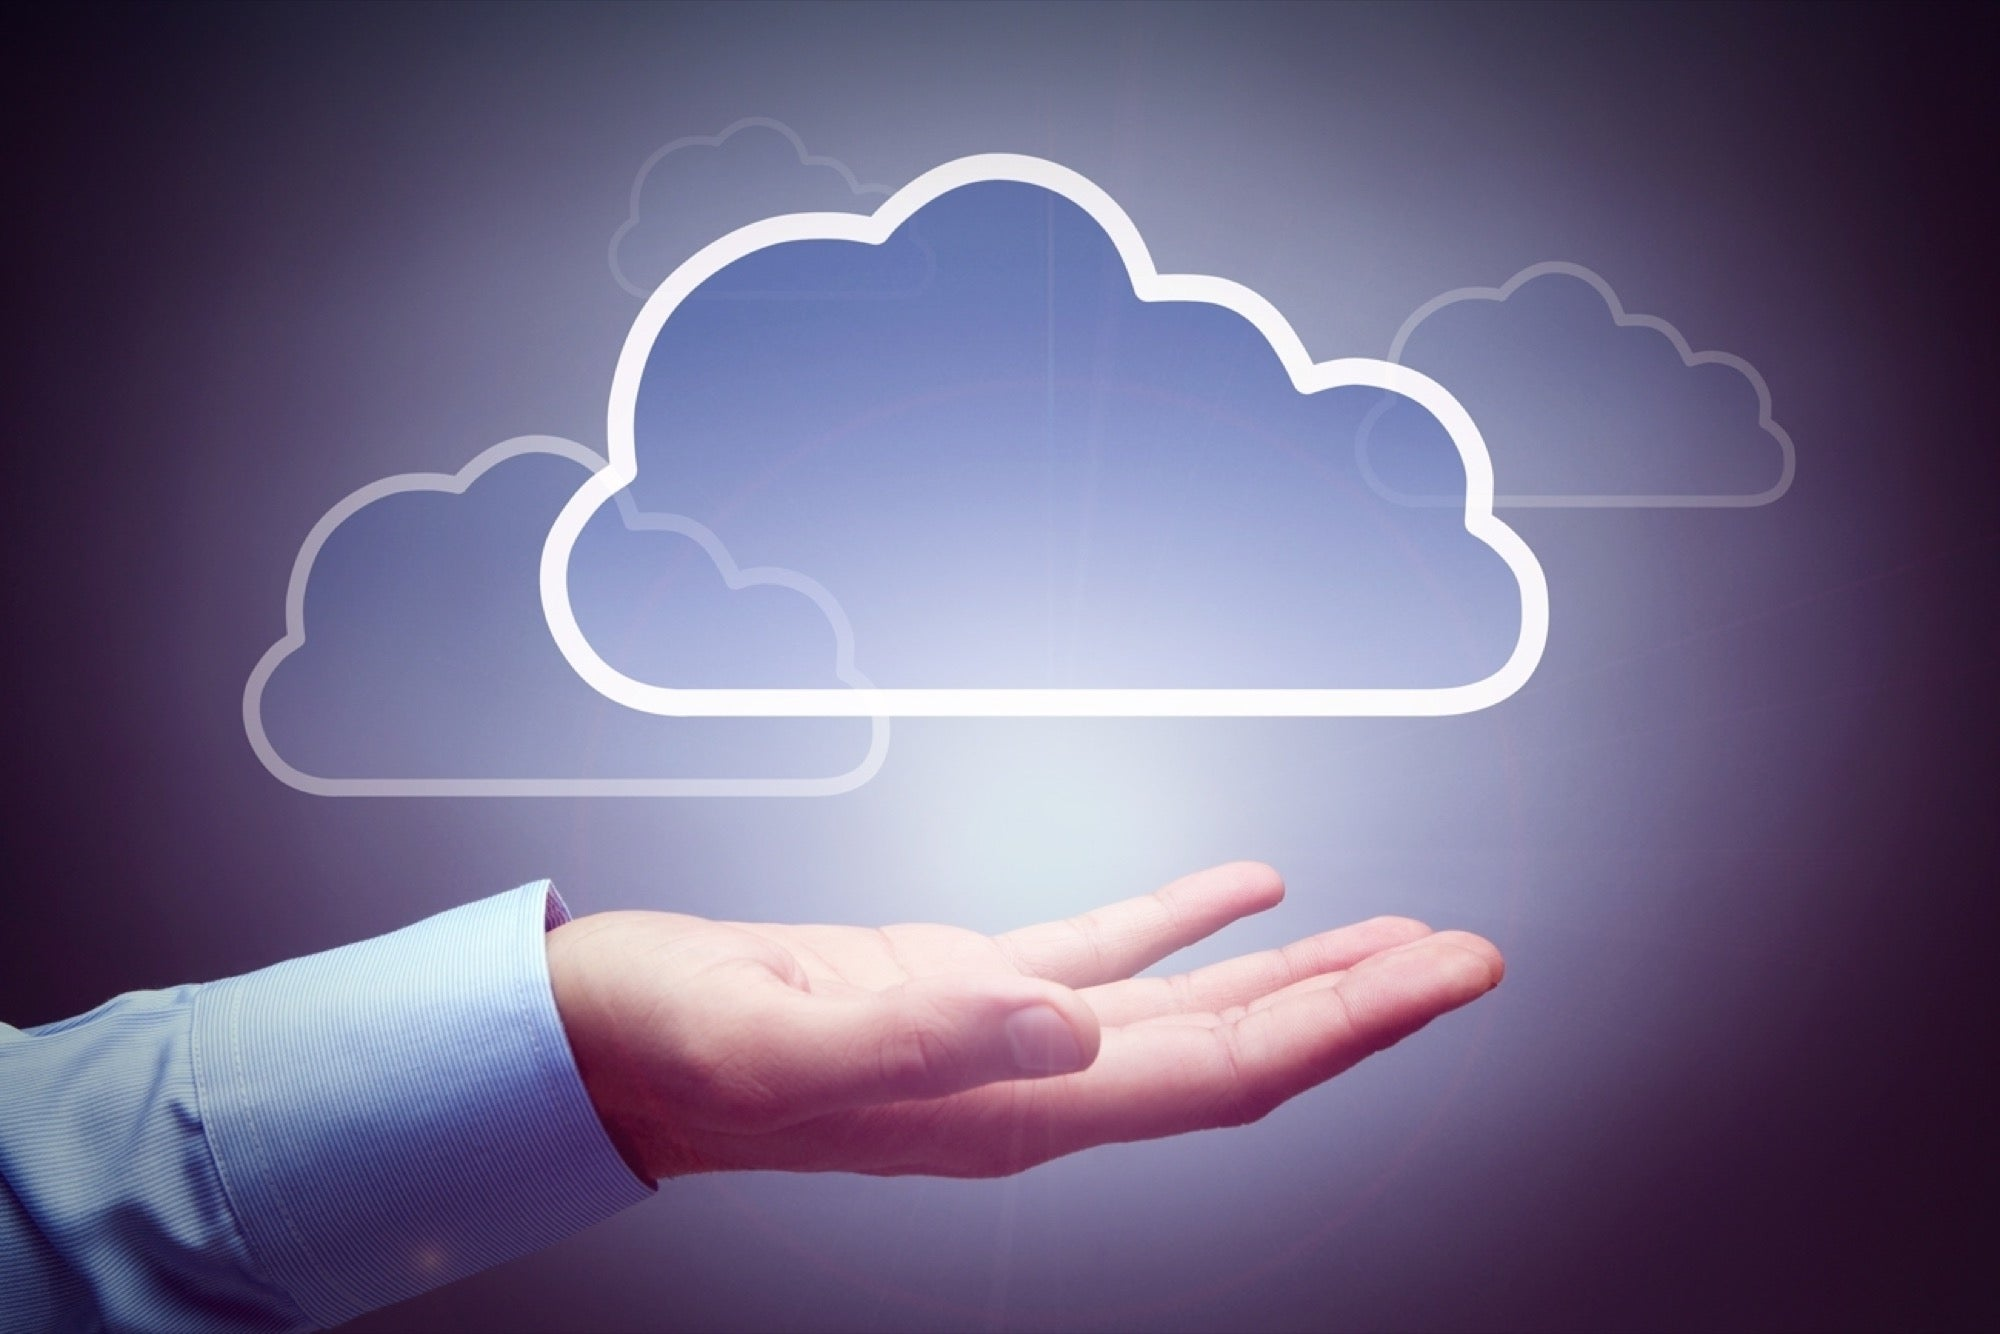 entrepreneur.com - Madhurima Roy - Data Means Cloud and Cloud Means Security - How SMBs are Enjoying Cloud Computing